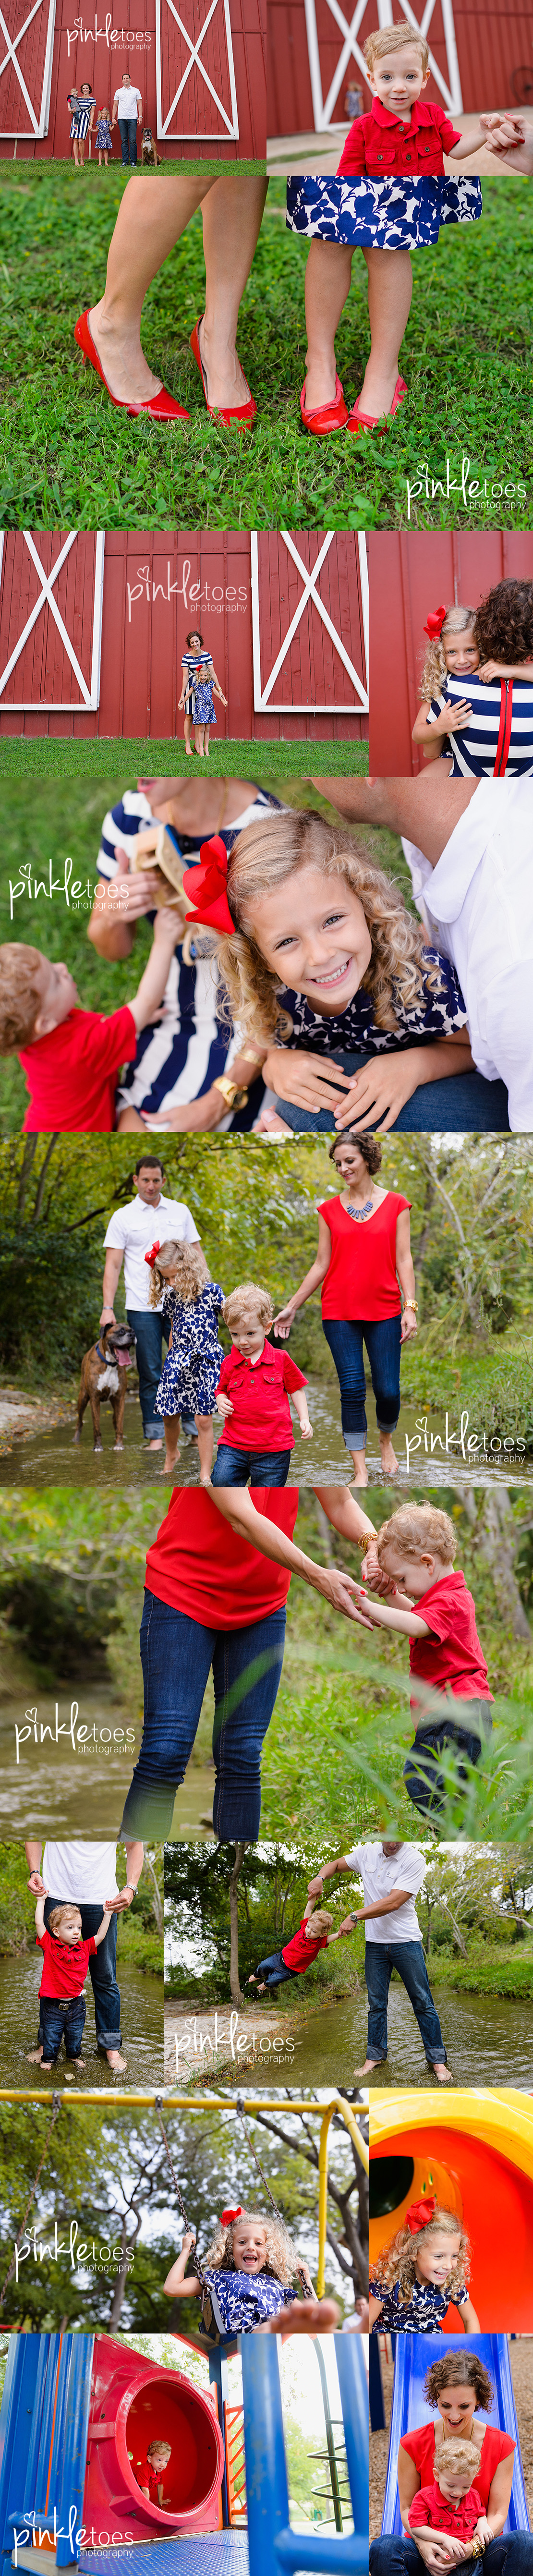 pinkle-toes-austin-childrens-photographer-modern-family-photo-session-playground-creek-red-barn-austin-texas